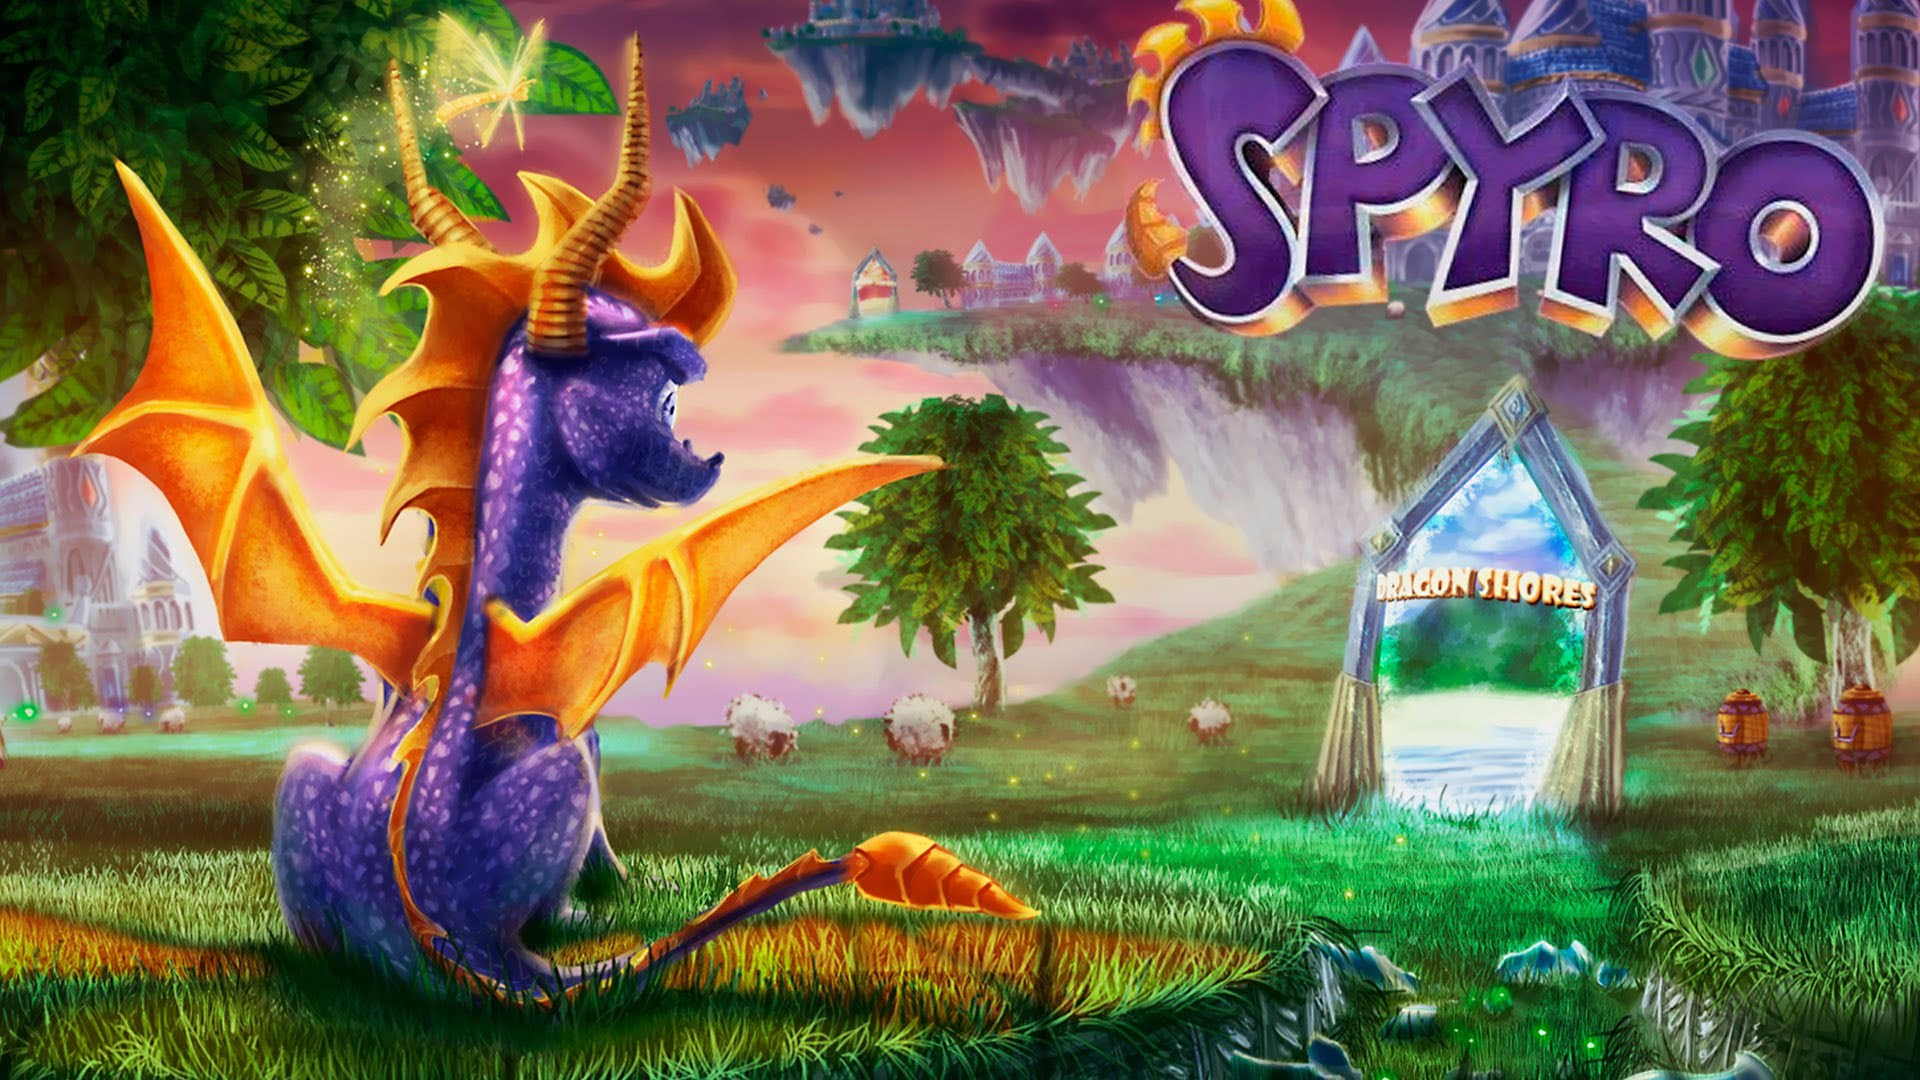 spyro-trilogy-black-box-shop-now